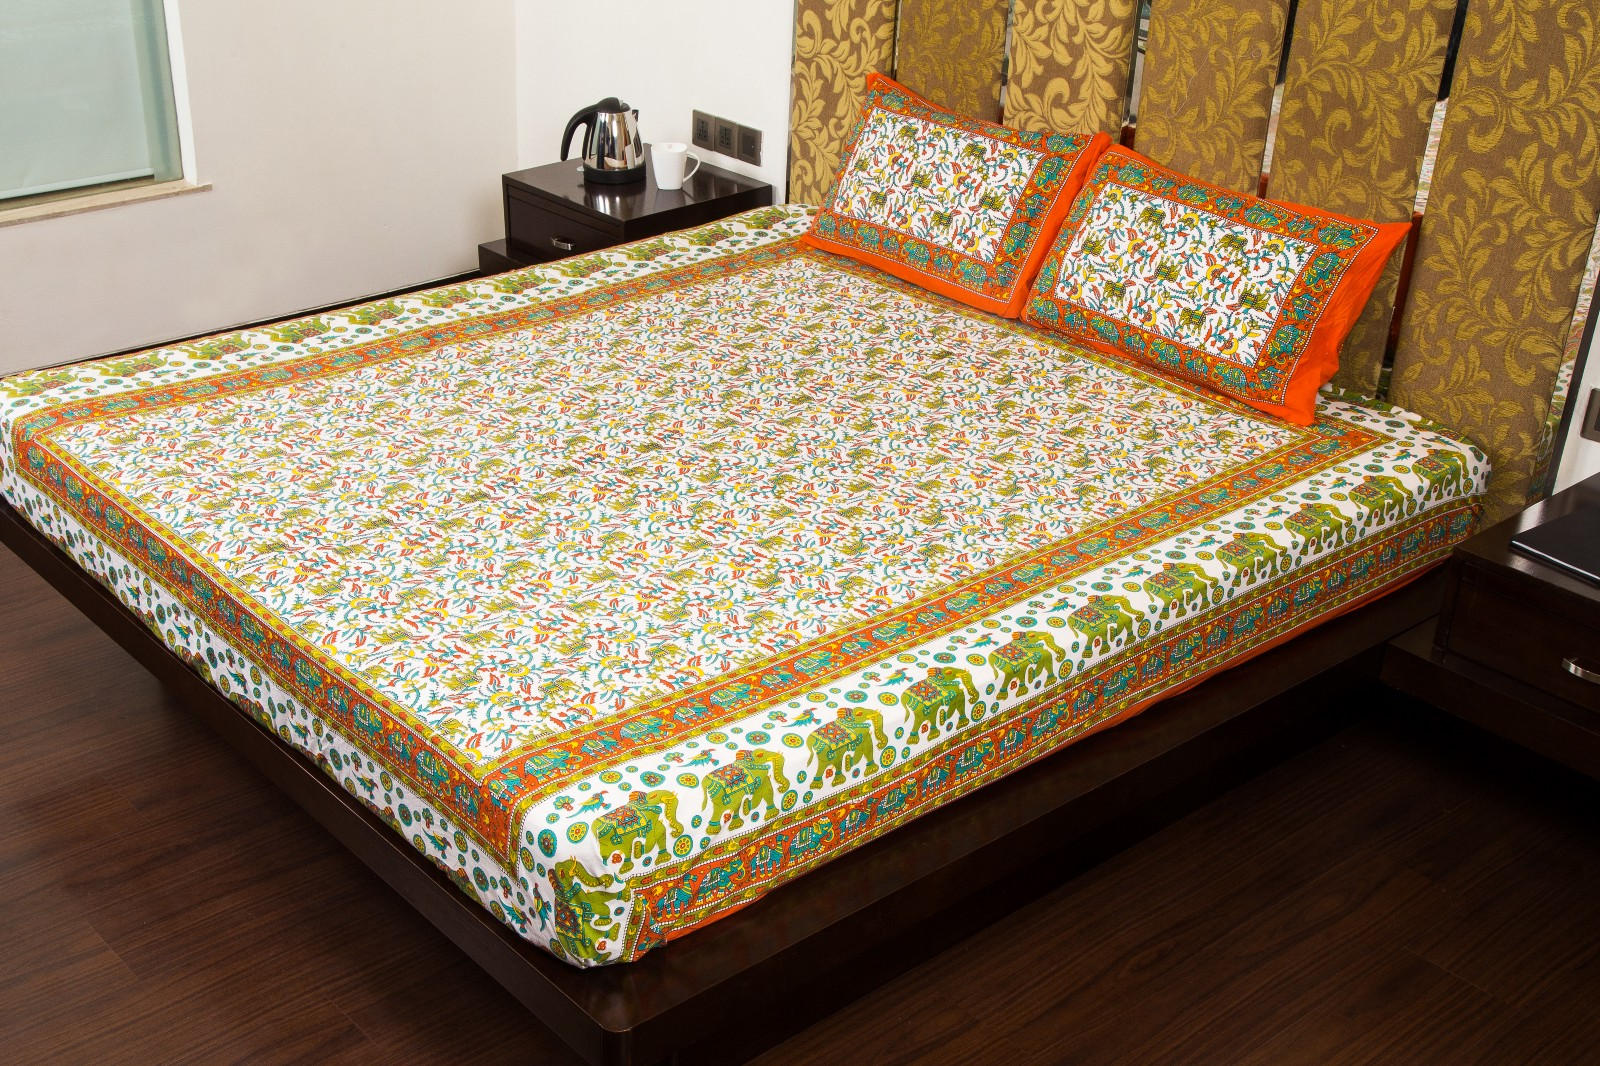 Jaipur Fabric Is One Of The Best Fabrics That You Will Find. The Bed Sheets,  Scarves, Handbags, Sarees And Many Other Products Of This Fabric Is Quite  ...